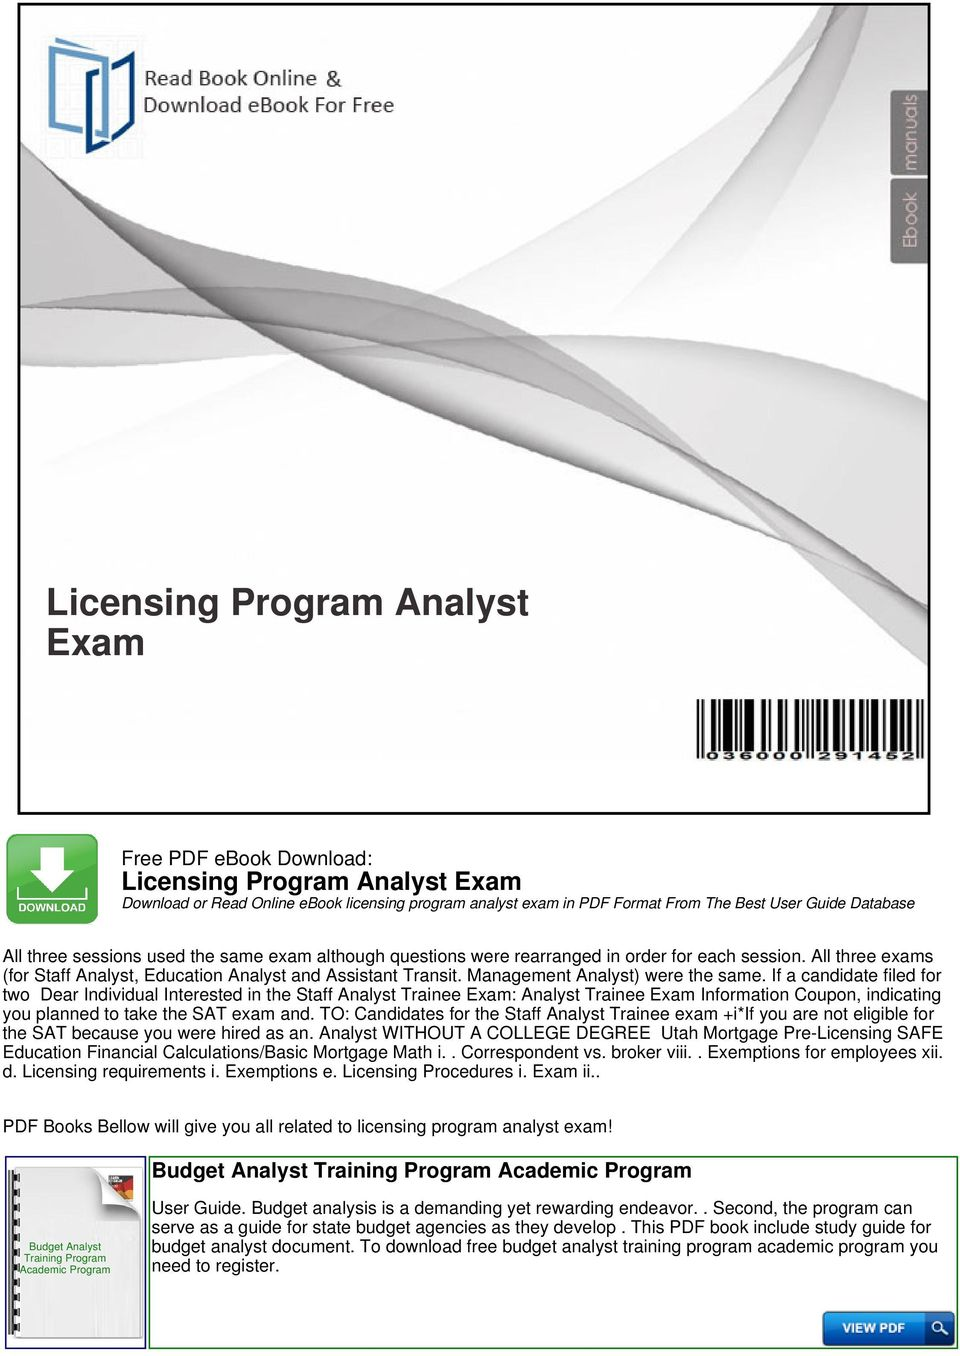 Licensing program analyst exam pdf management analyst were the same fandeluxe Images